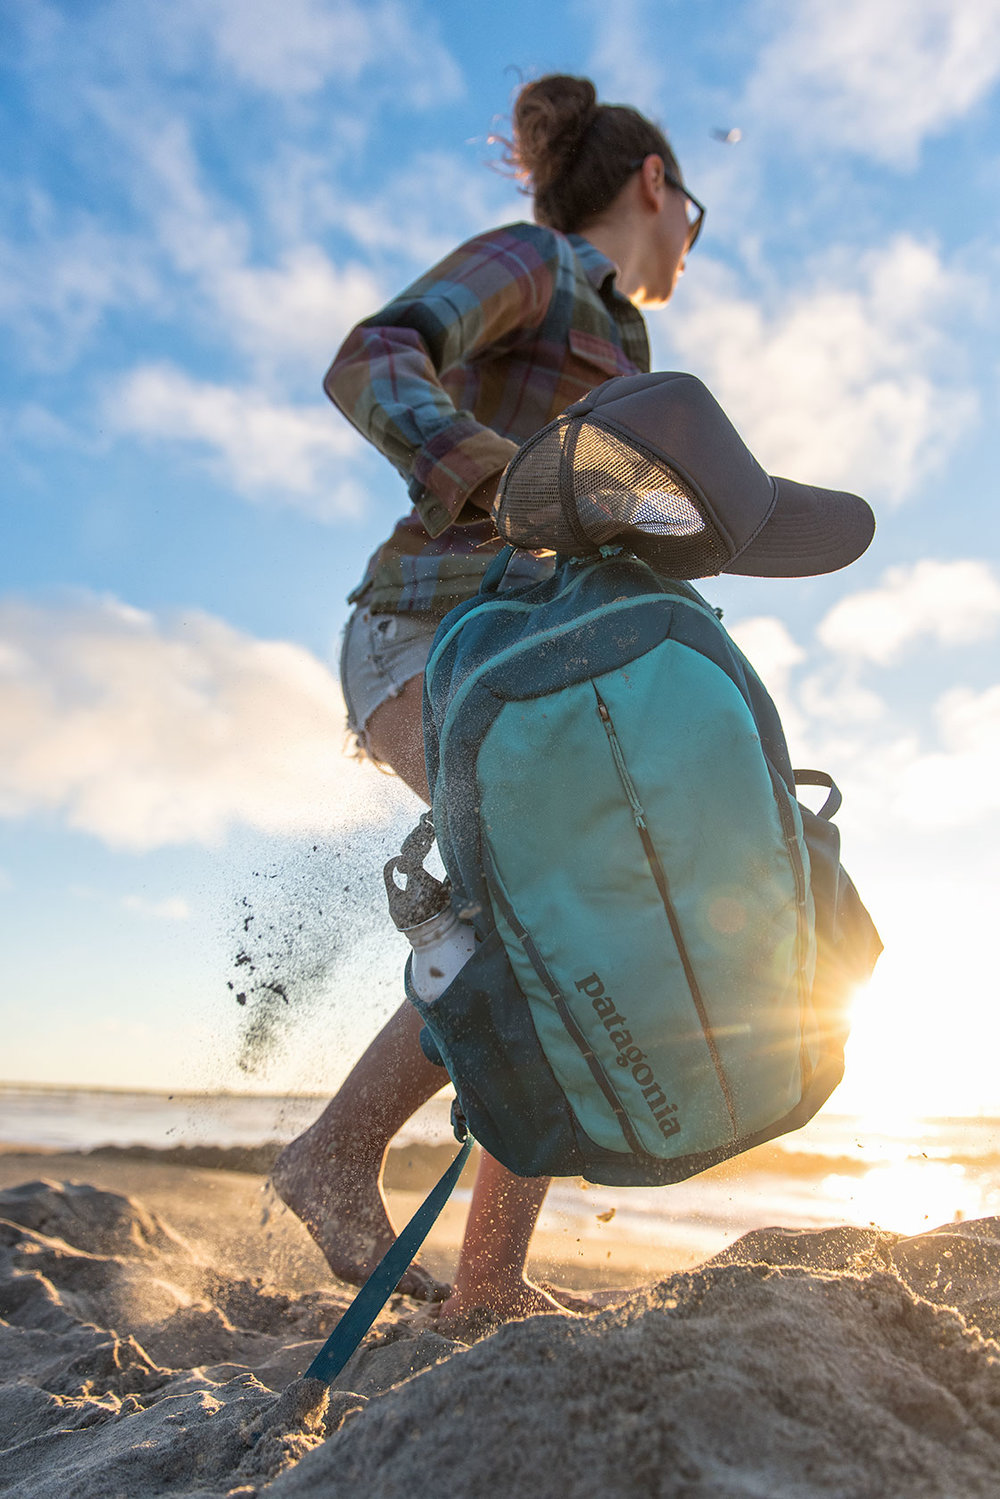 austin-trigg-patagonia-day-pack-southern-califronia-lifestle-product-backpack-adventure-beach-sunset-san-diego-outdoor.jpg